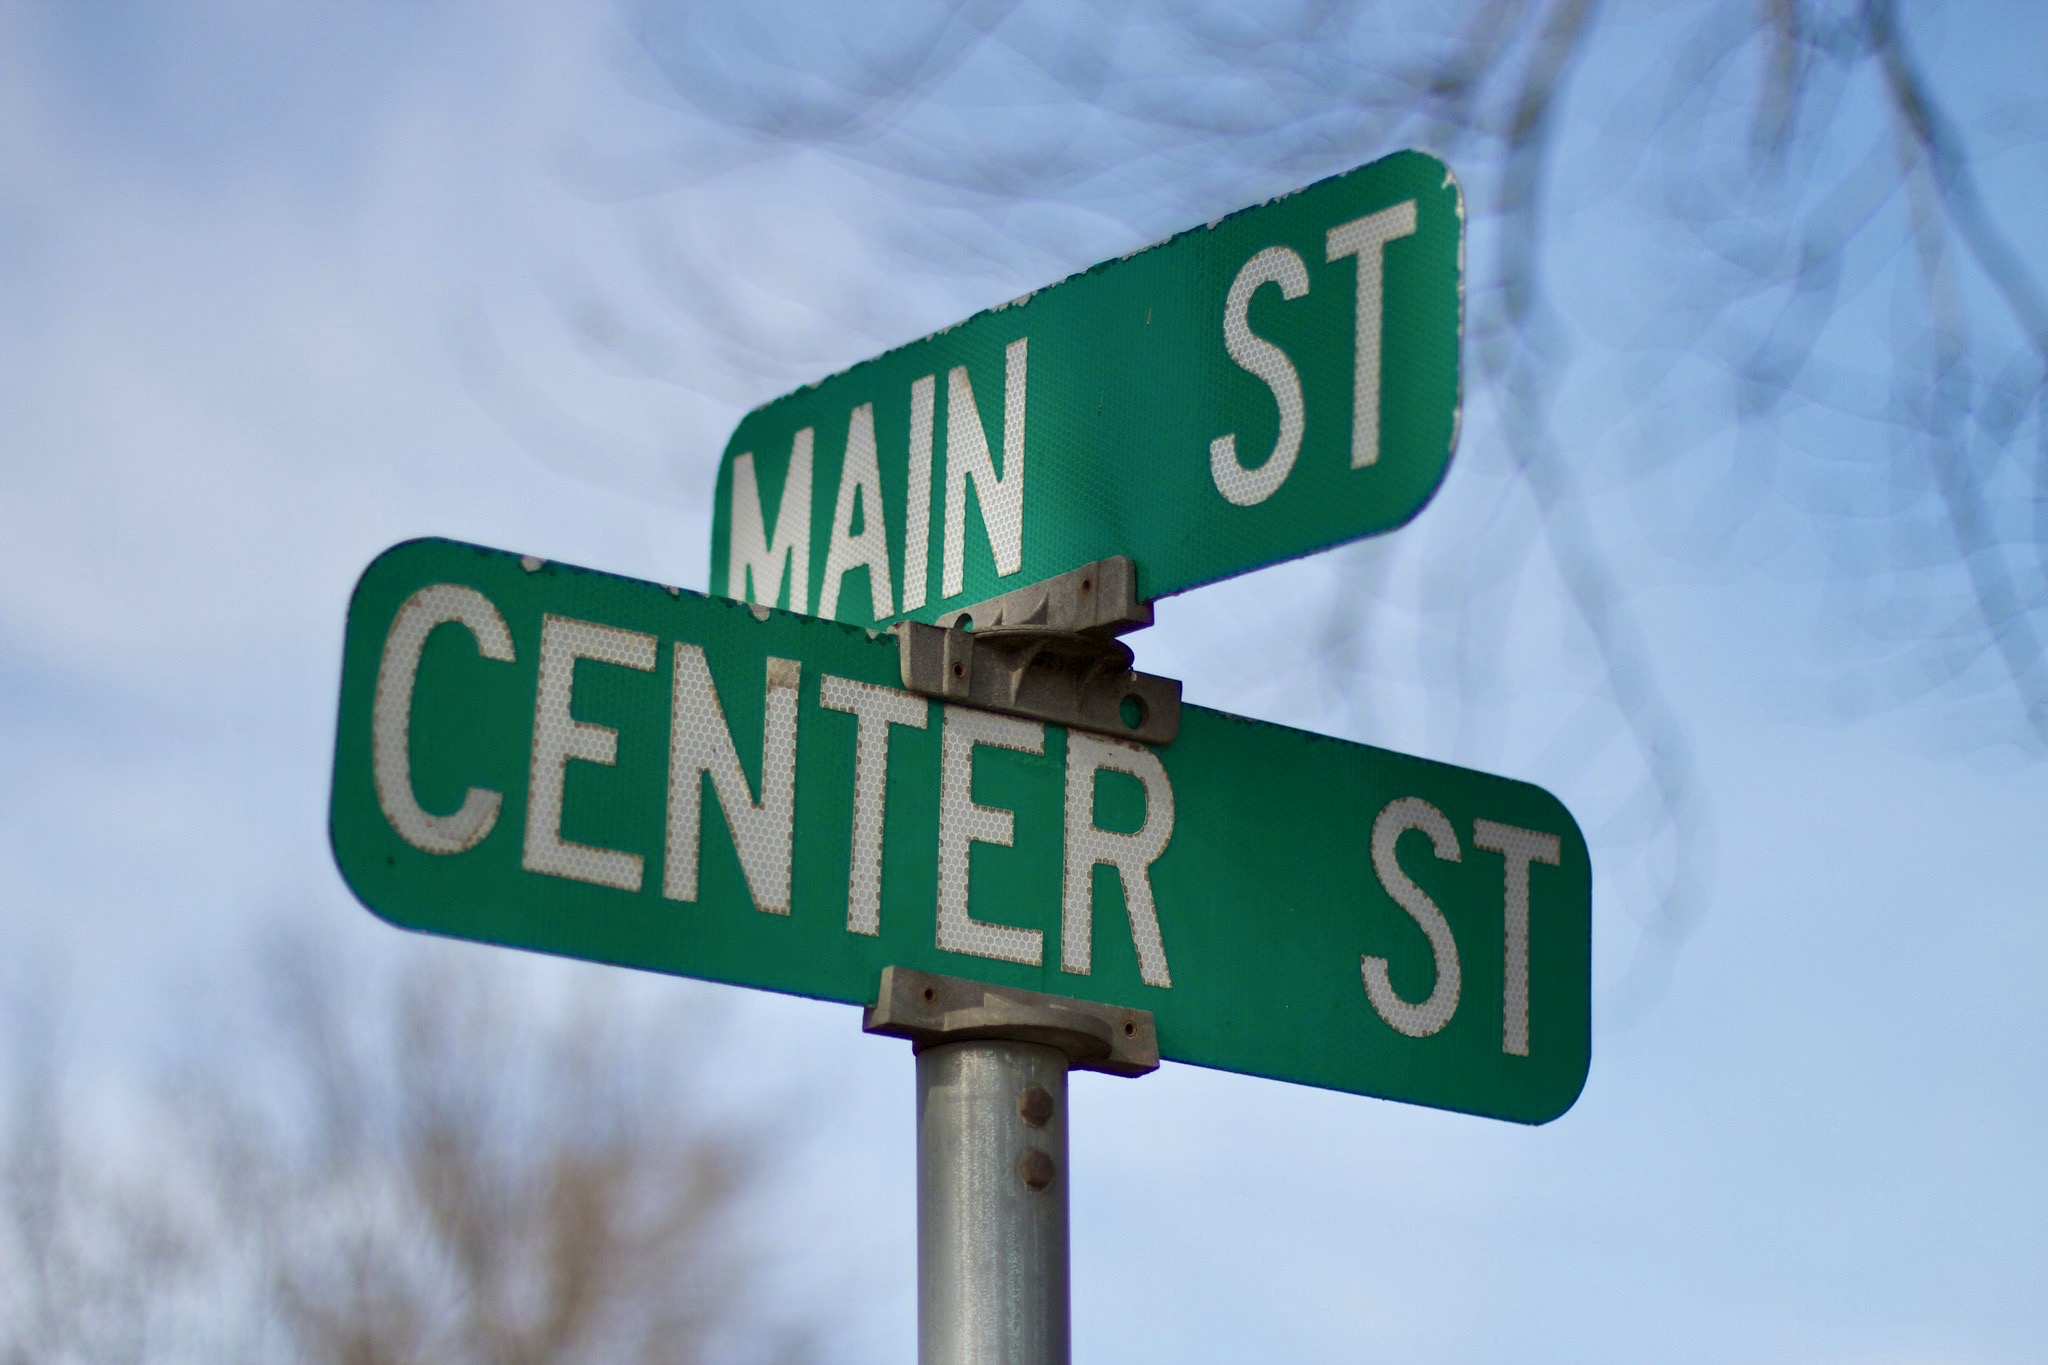 photo of a Main Street sign